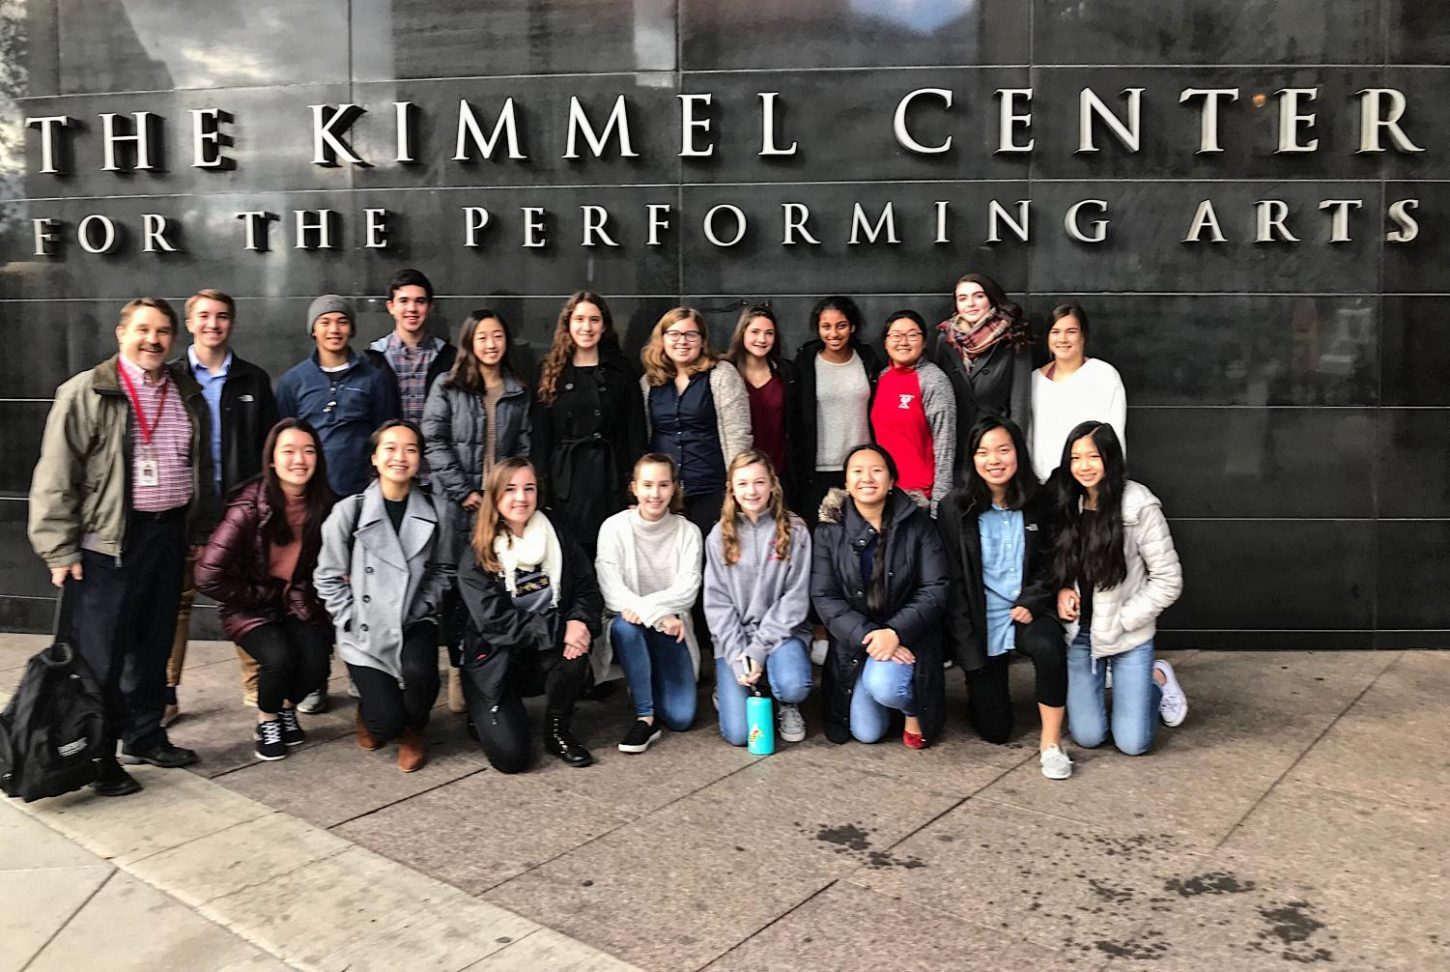 Haverford High School's String Ensemble poses in front of the Kimmel Center in Center City, Philadelphia.